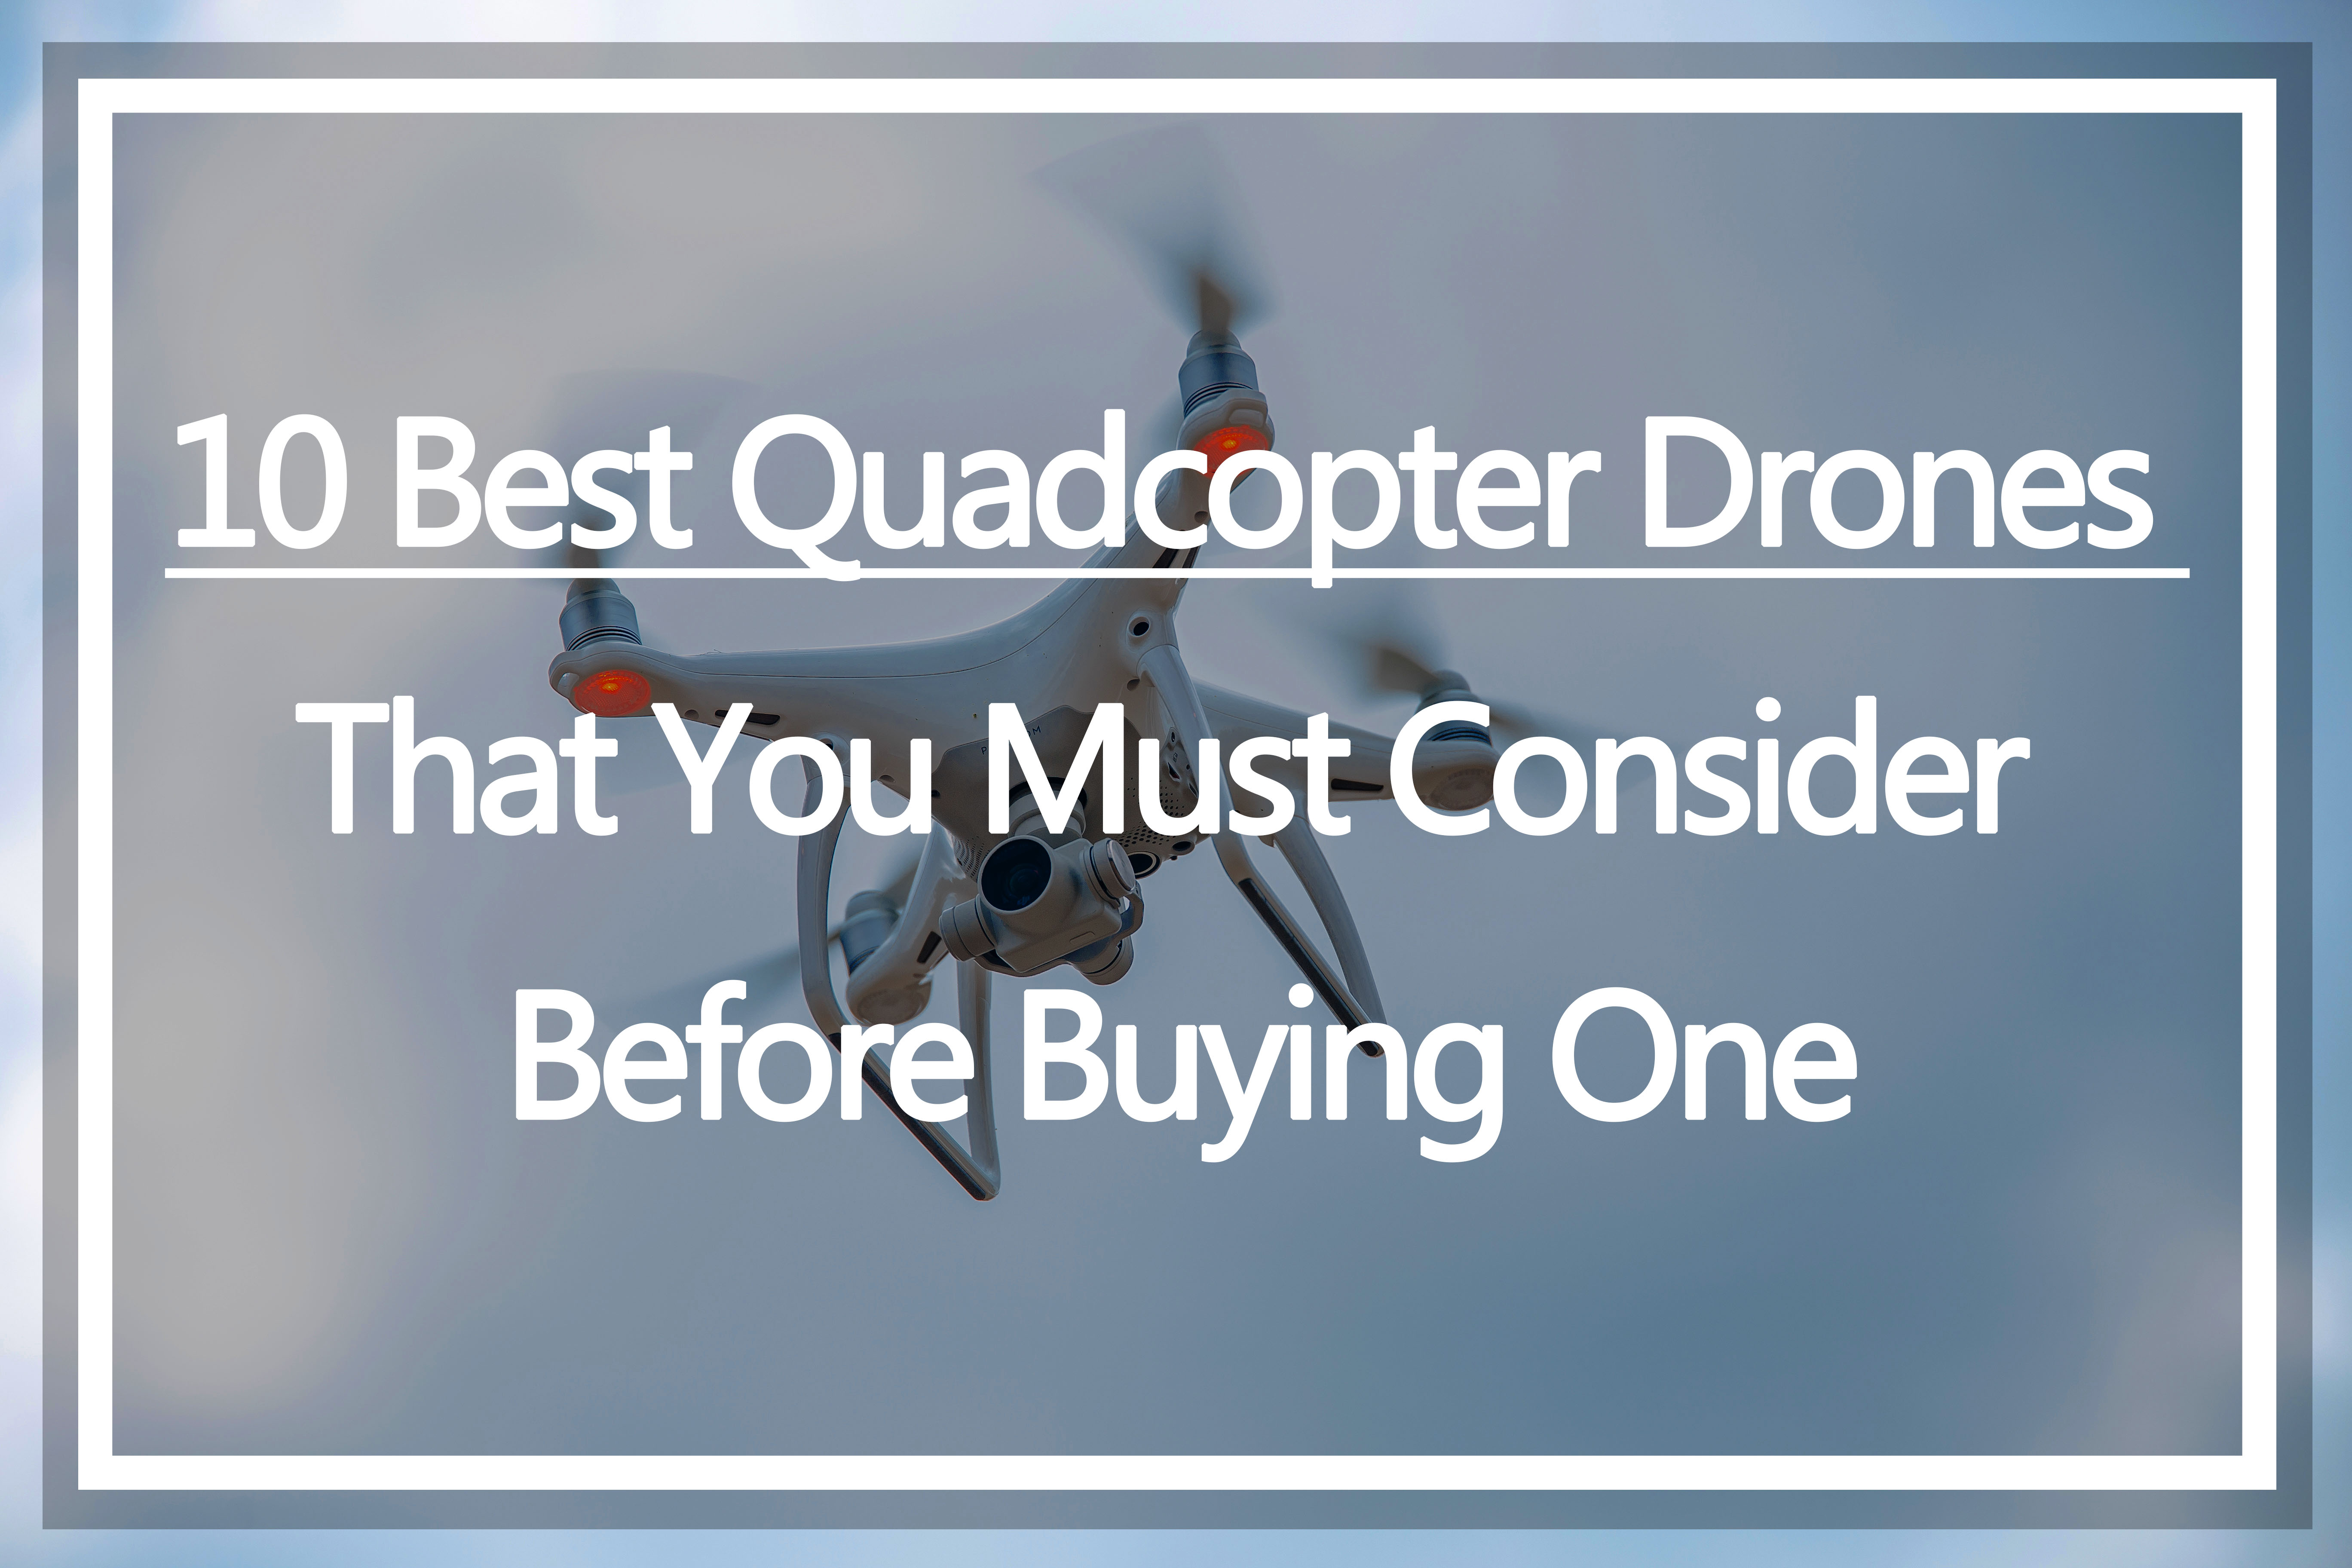 10 Best Quadcopter Drones That You Must Consider Before Buying One